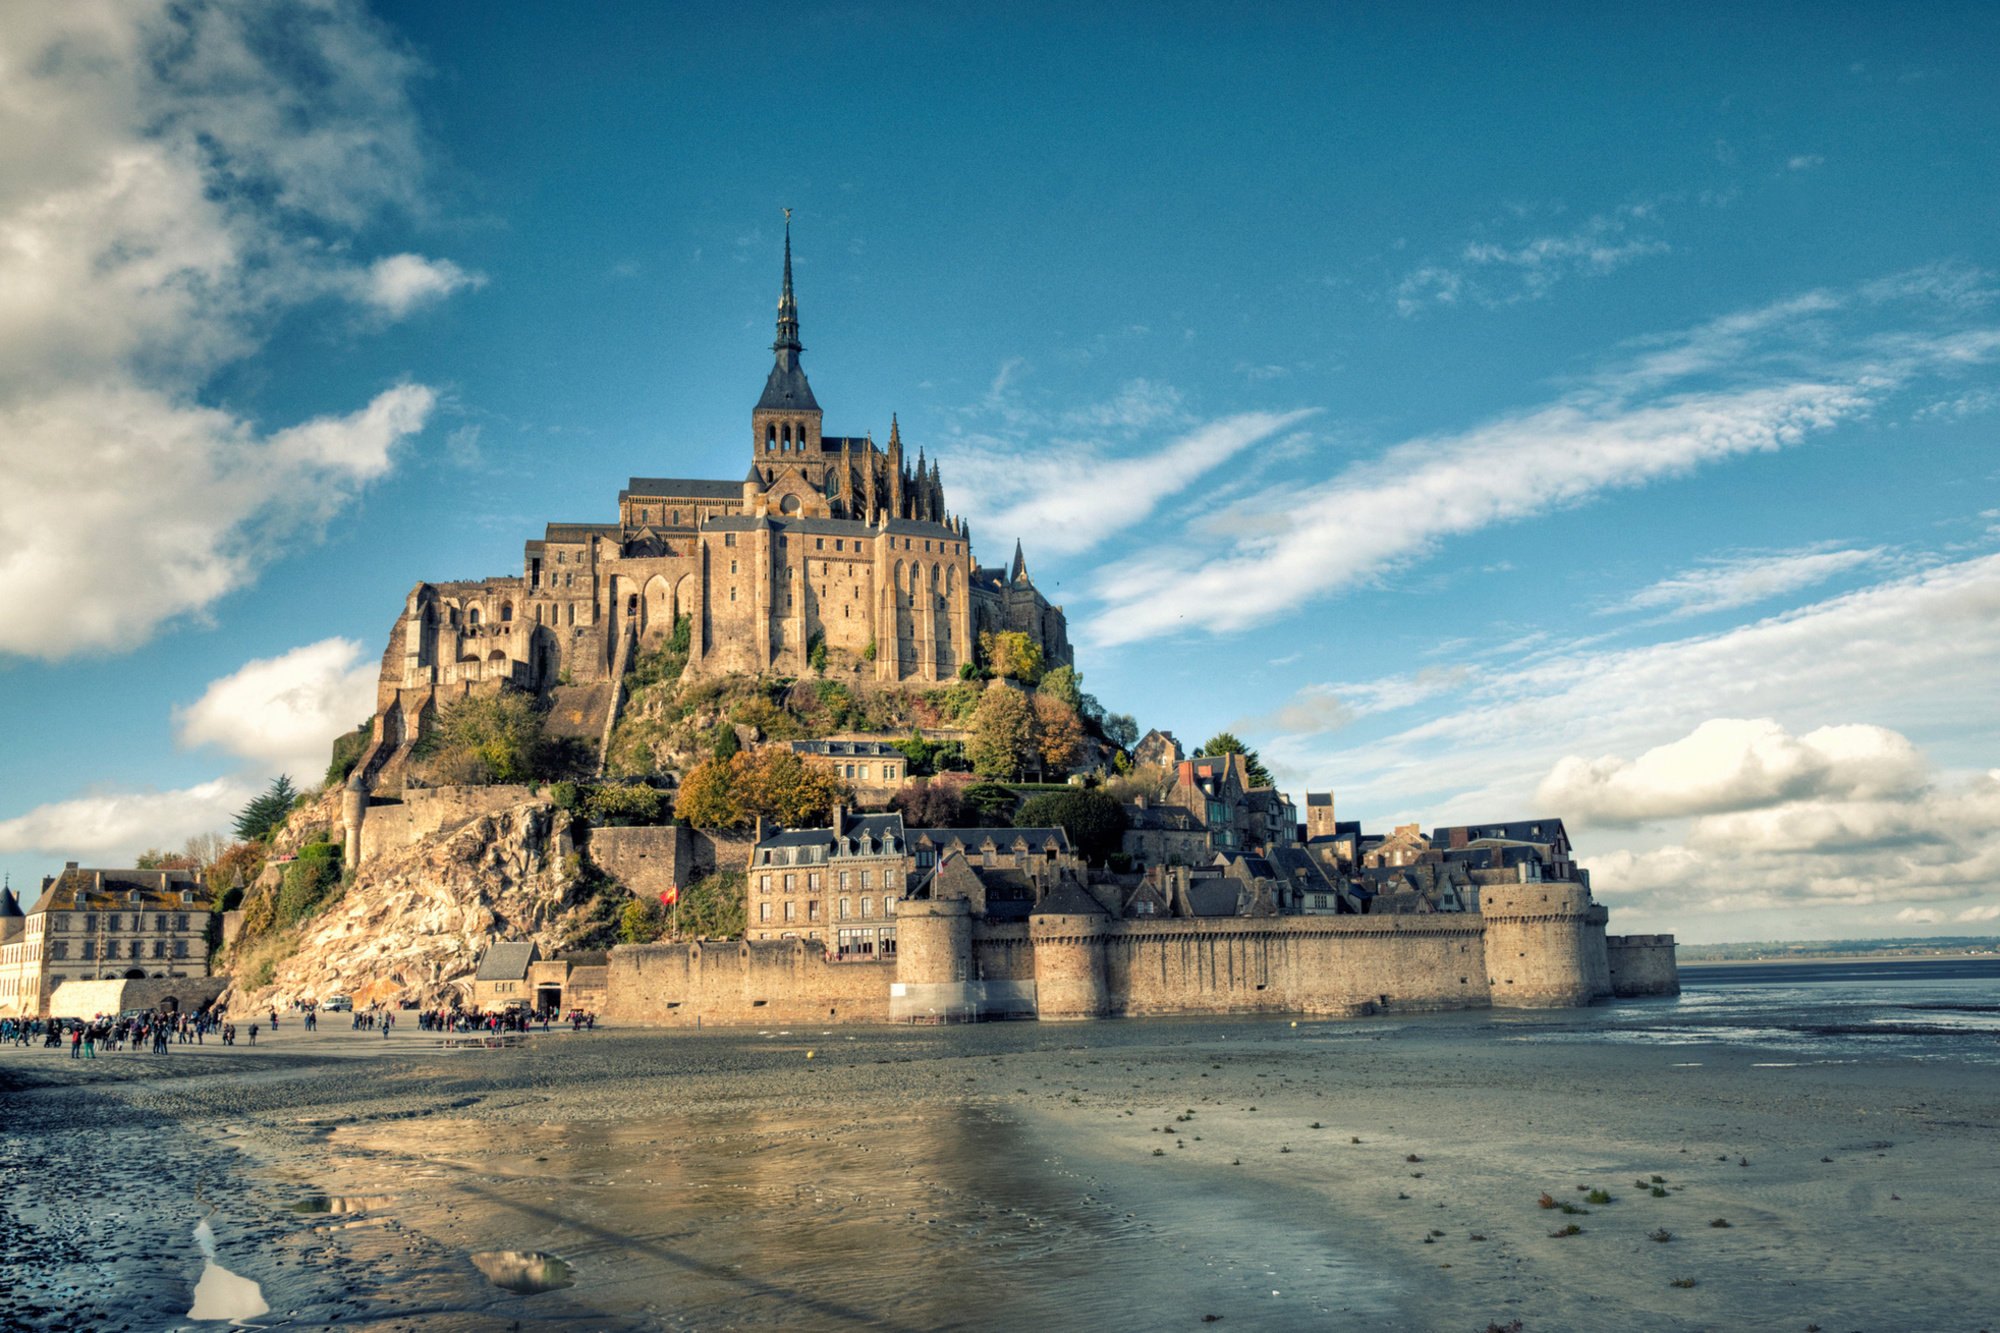 De mythische Mont Saint-Michel., Getty